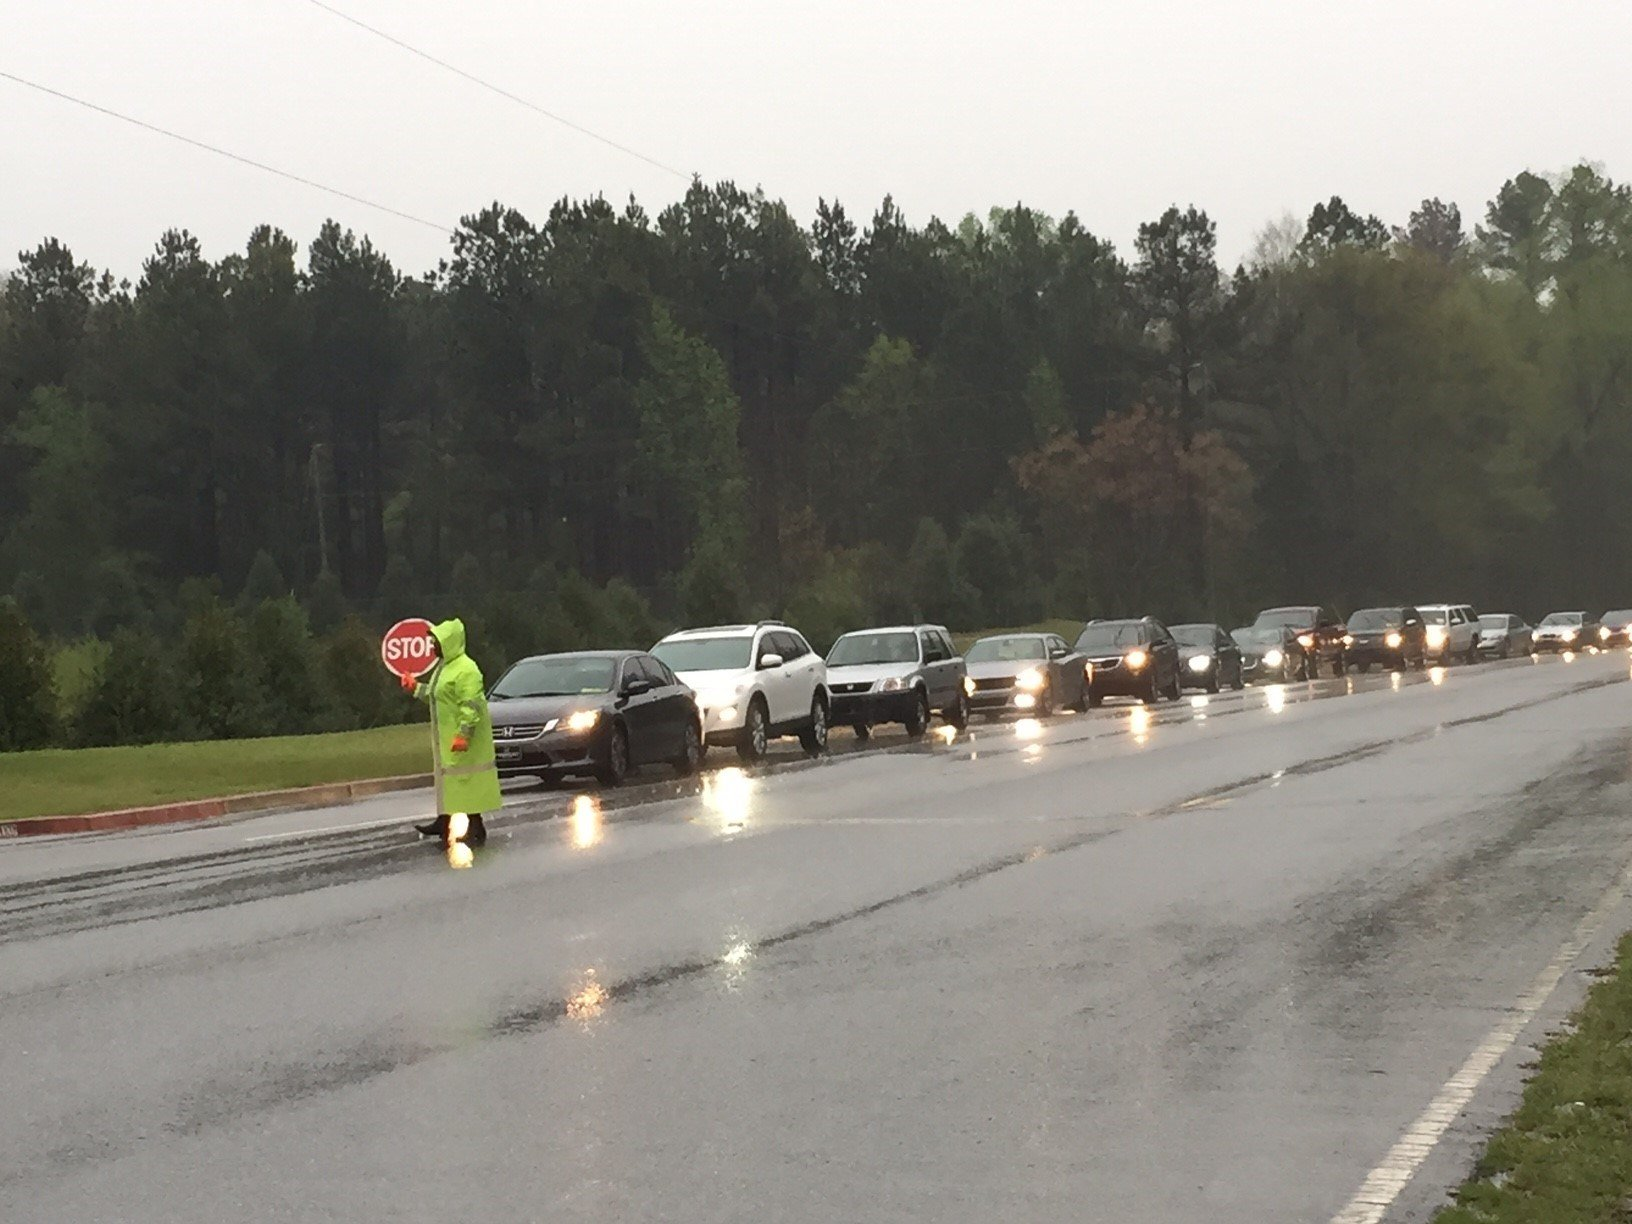 Early dismissal at Midway Elementary School in Anderson Co. (FOX Carolina/ April 5, 2017)